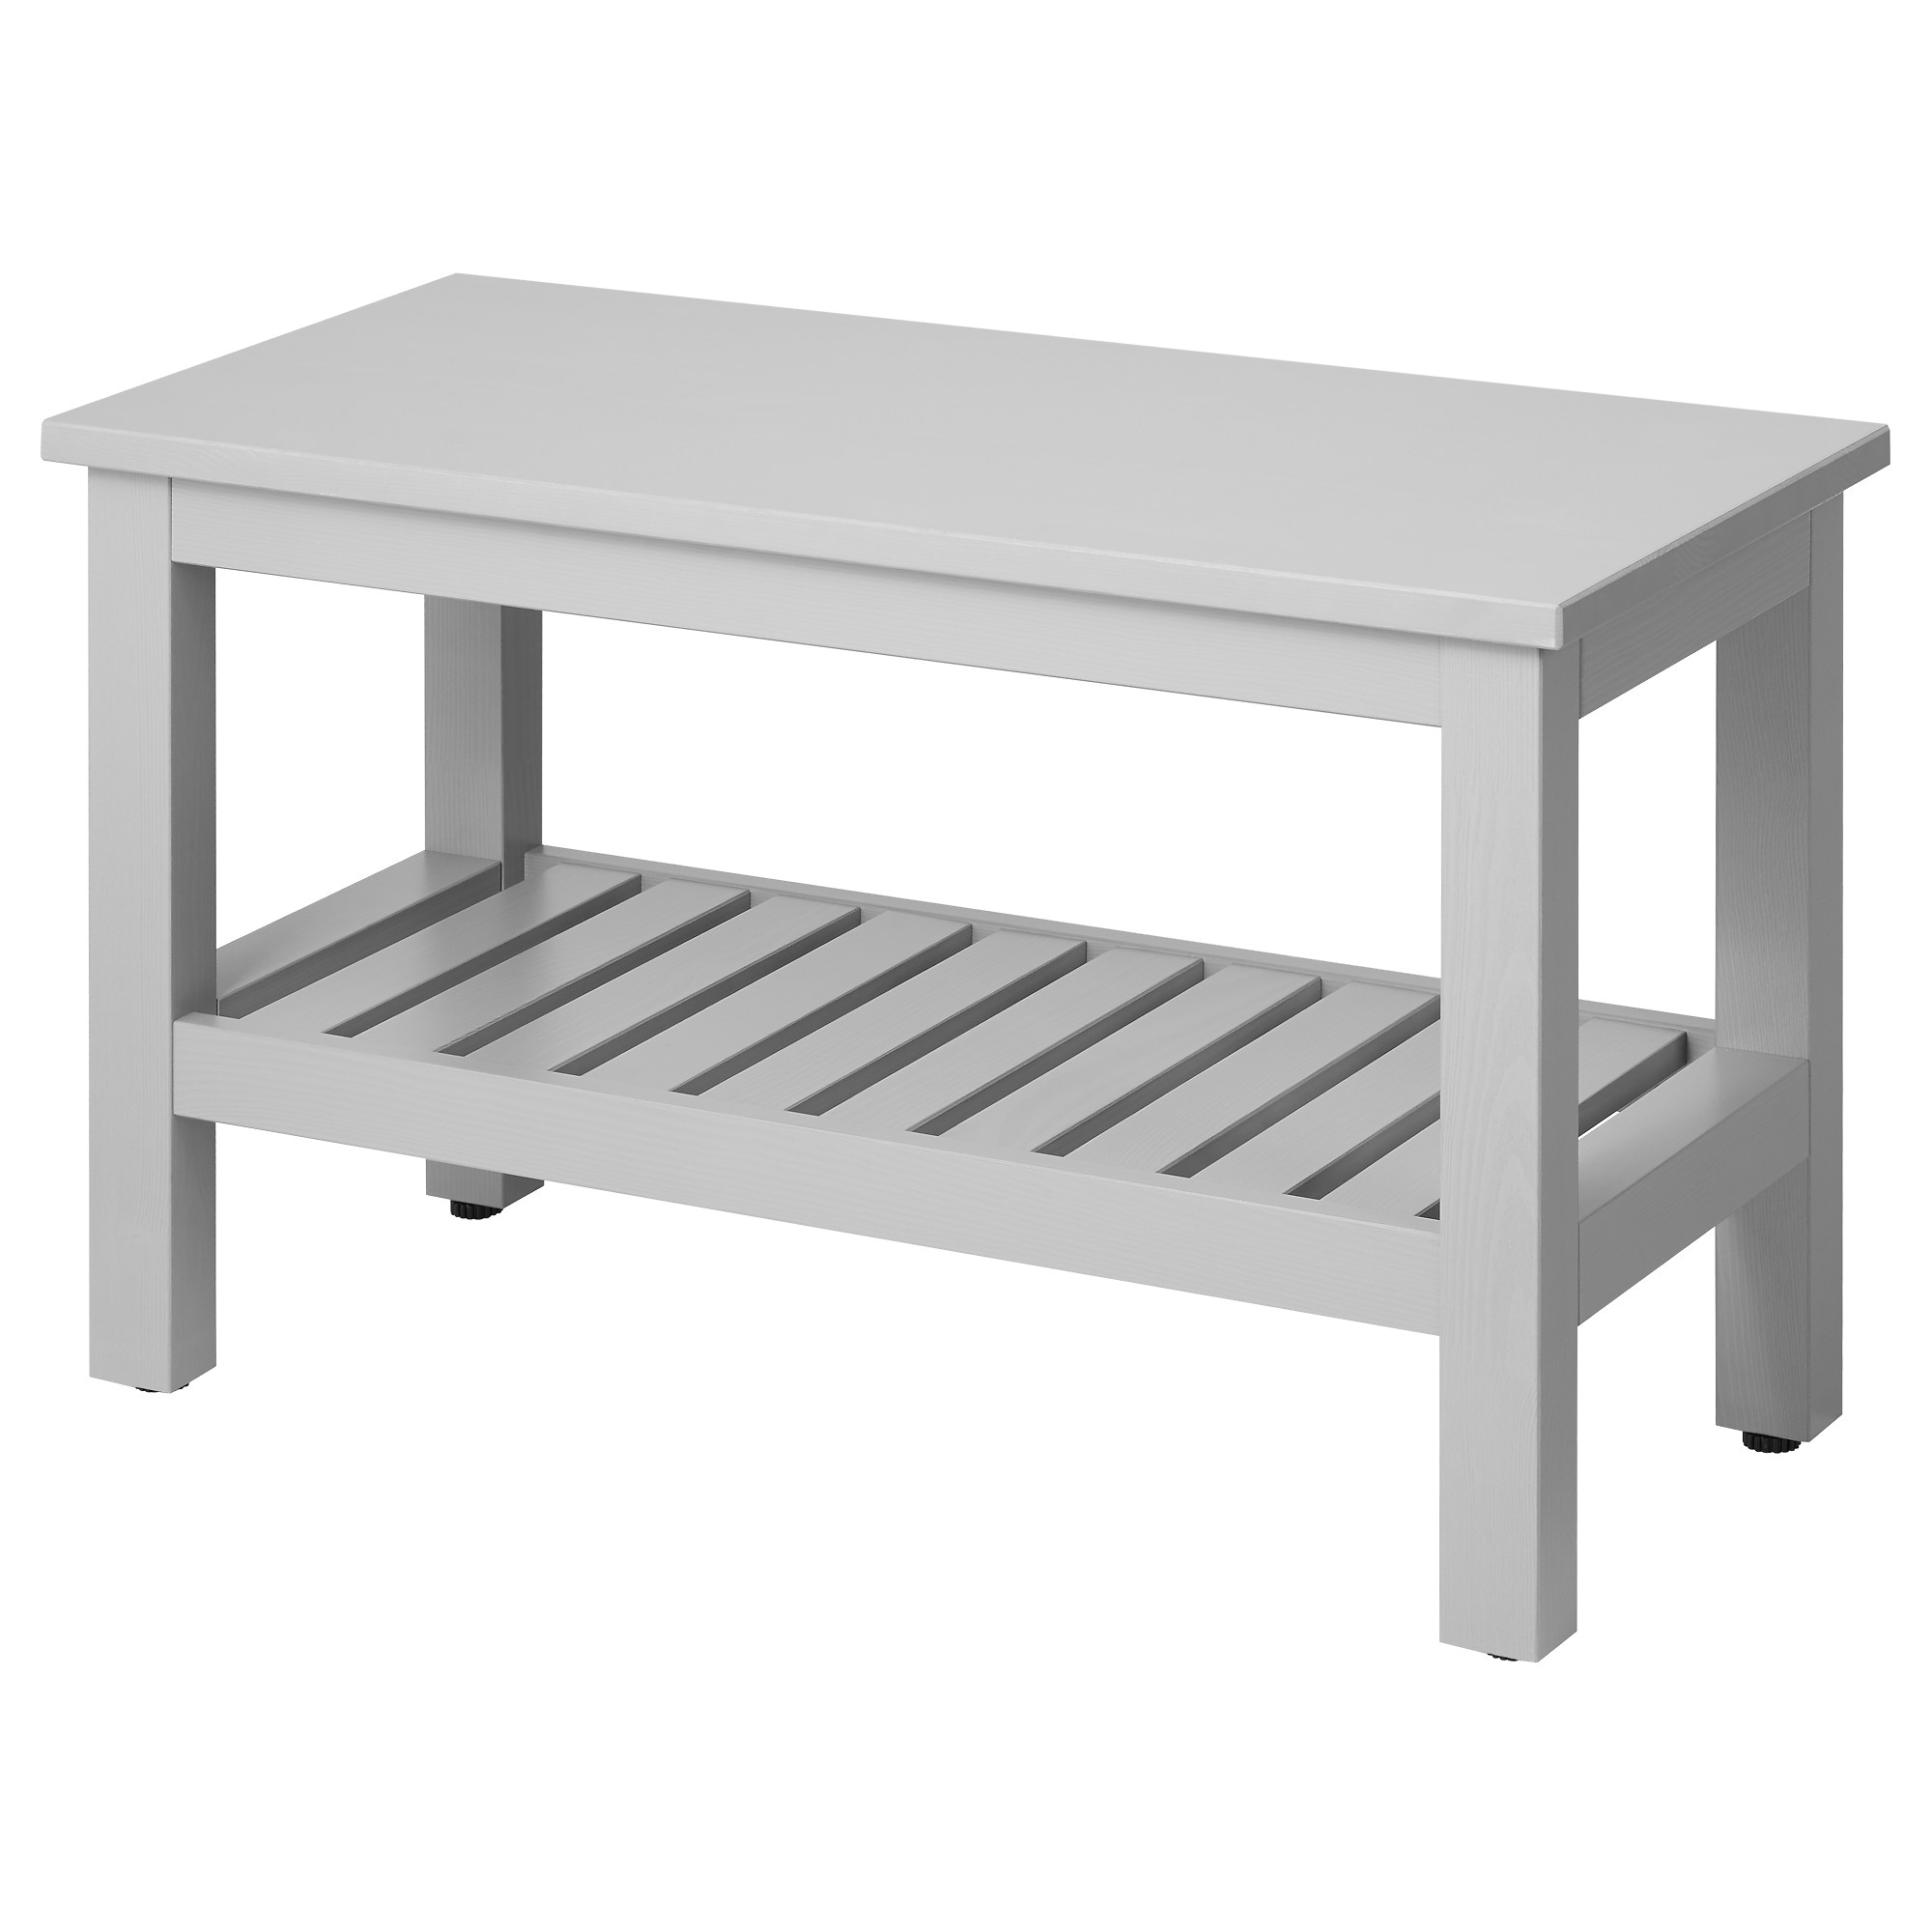 Perfect HEMNES Bench   White   IKEA